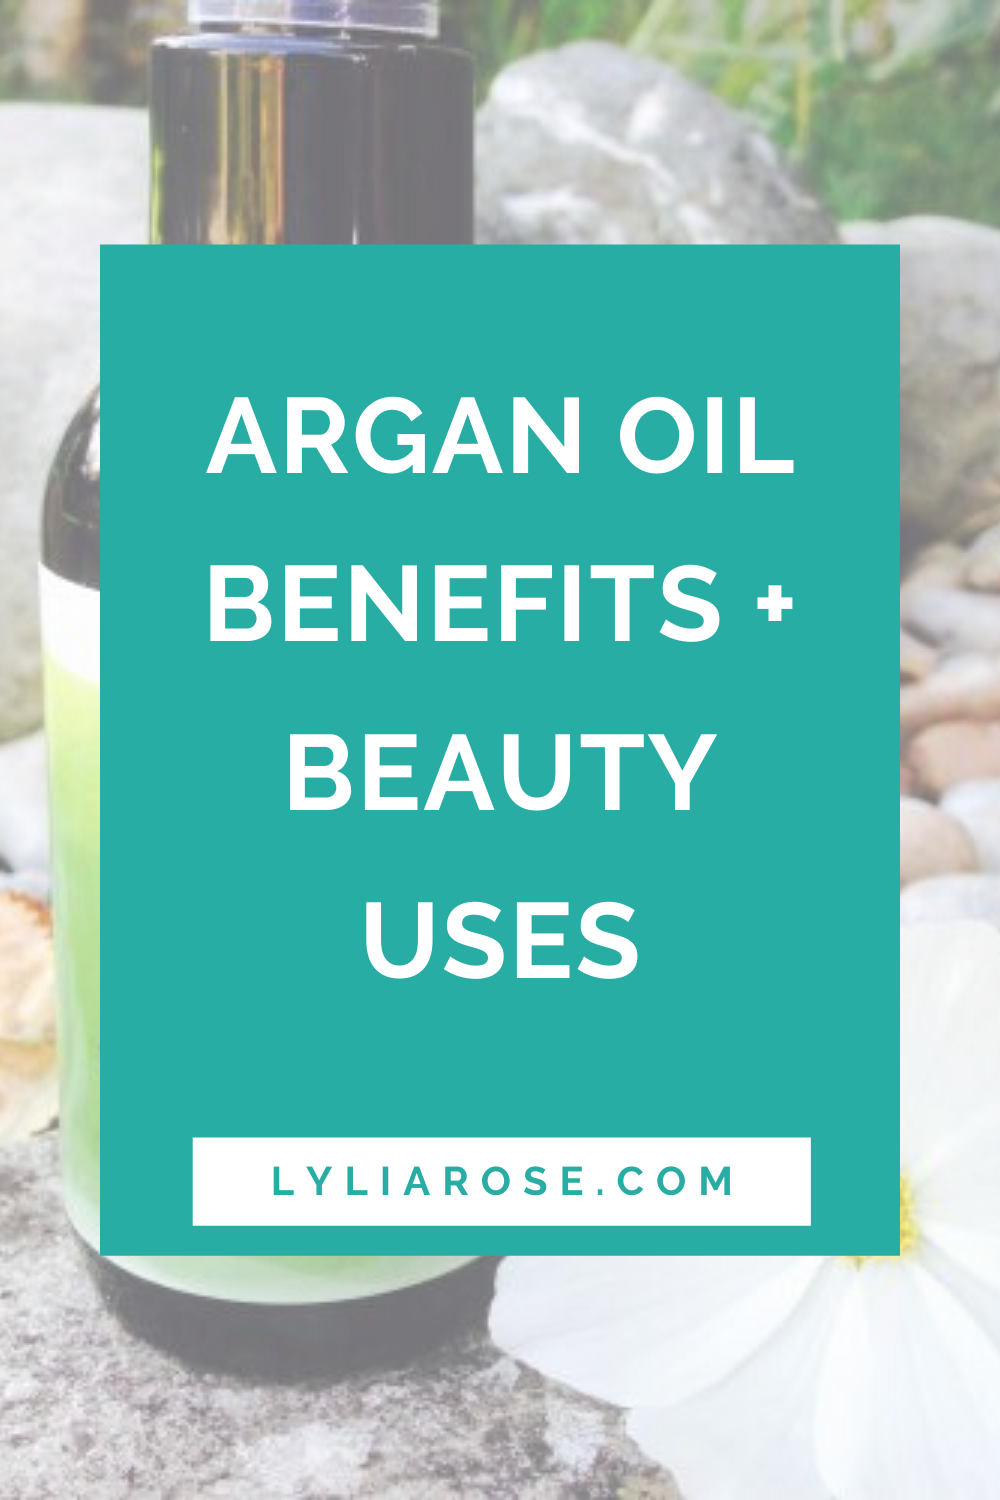 Argan oil benefits + beauty uses (1)